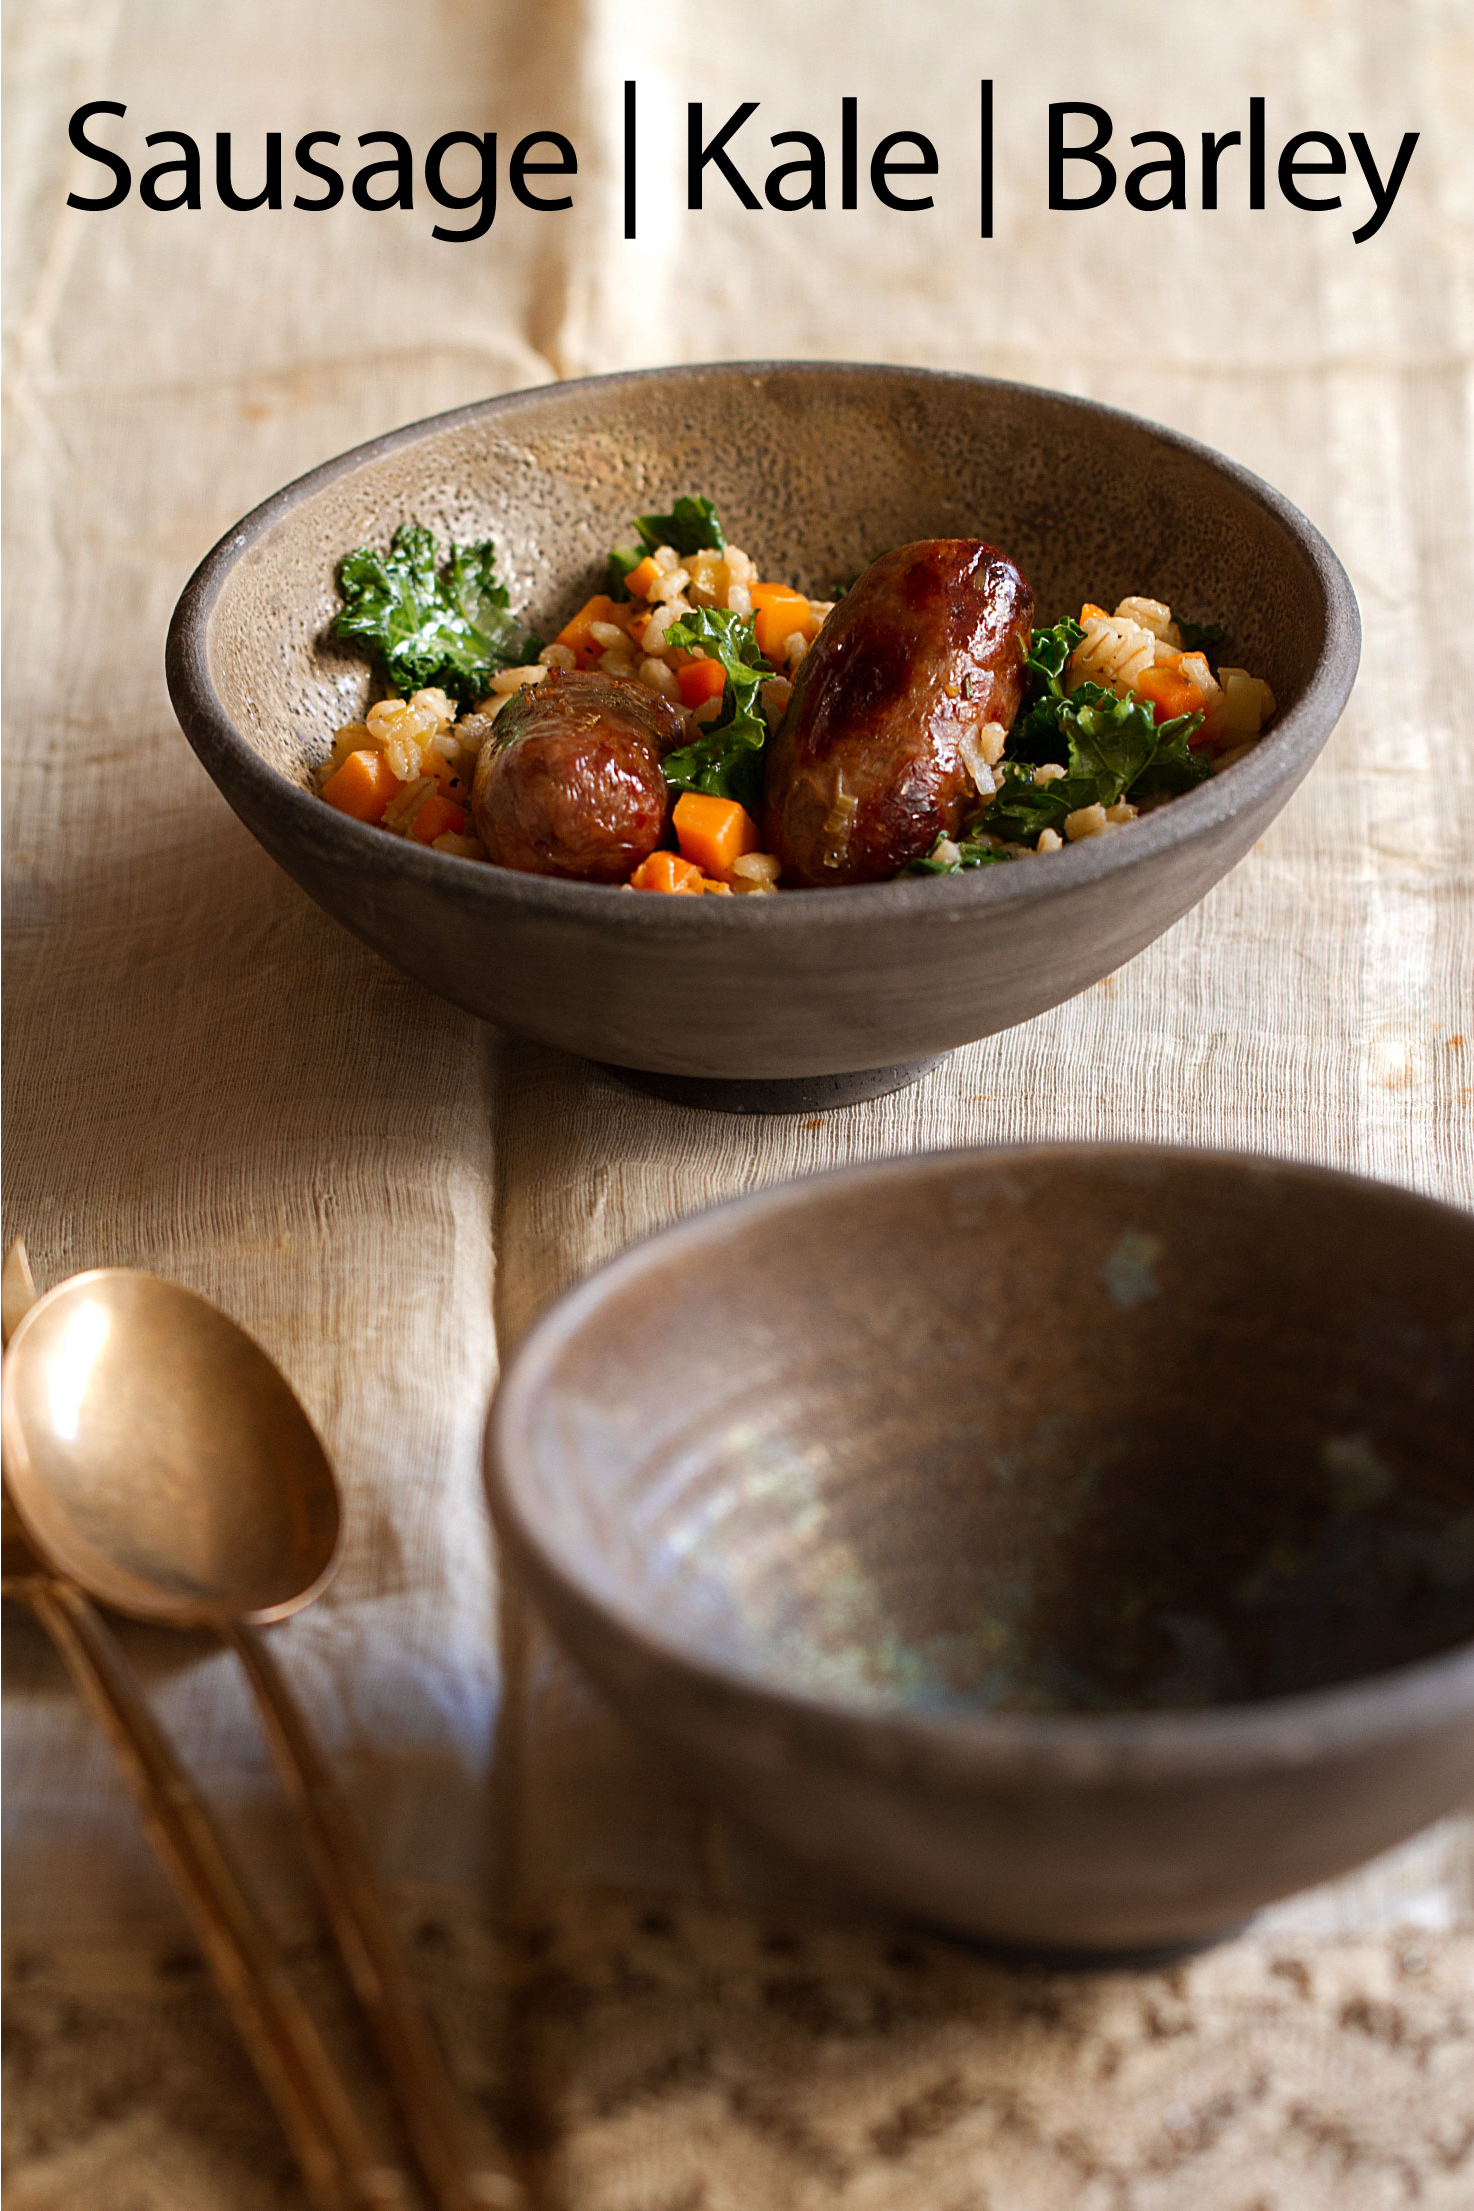 Italian Sausages Cooked in the Oven and Served in a Stew with Kale and BarleyItalian Sausages Cooked in the Oven and Served in a Stew with Kale and Barley